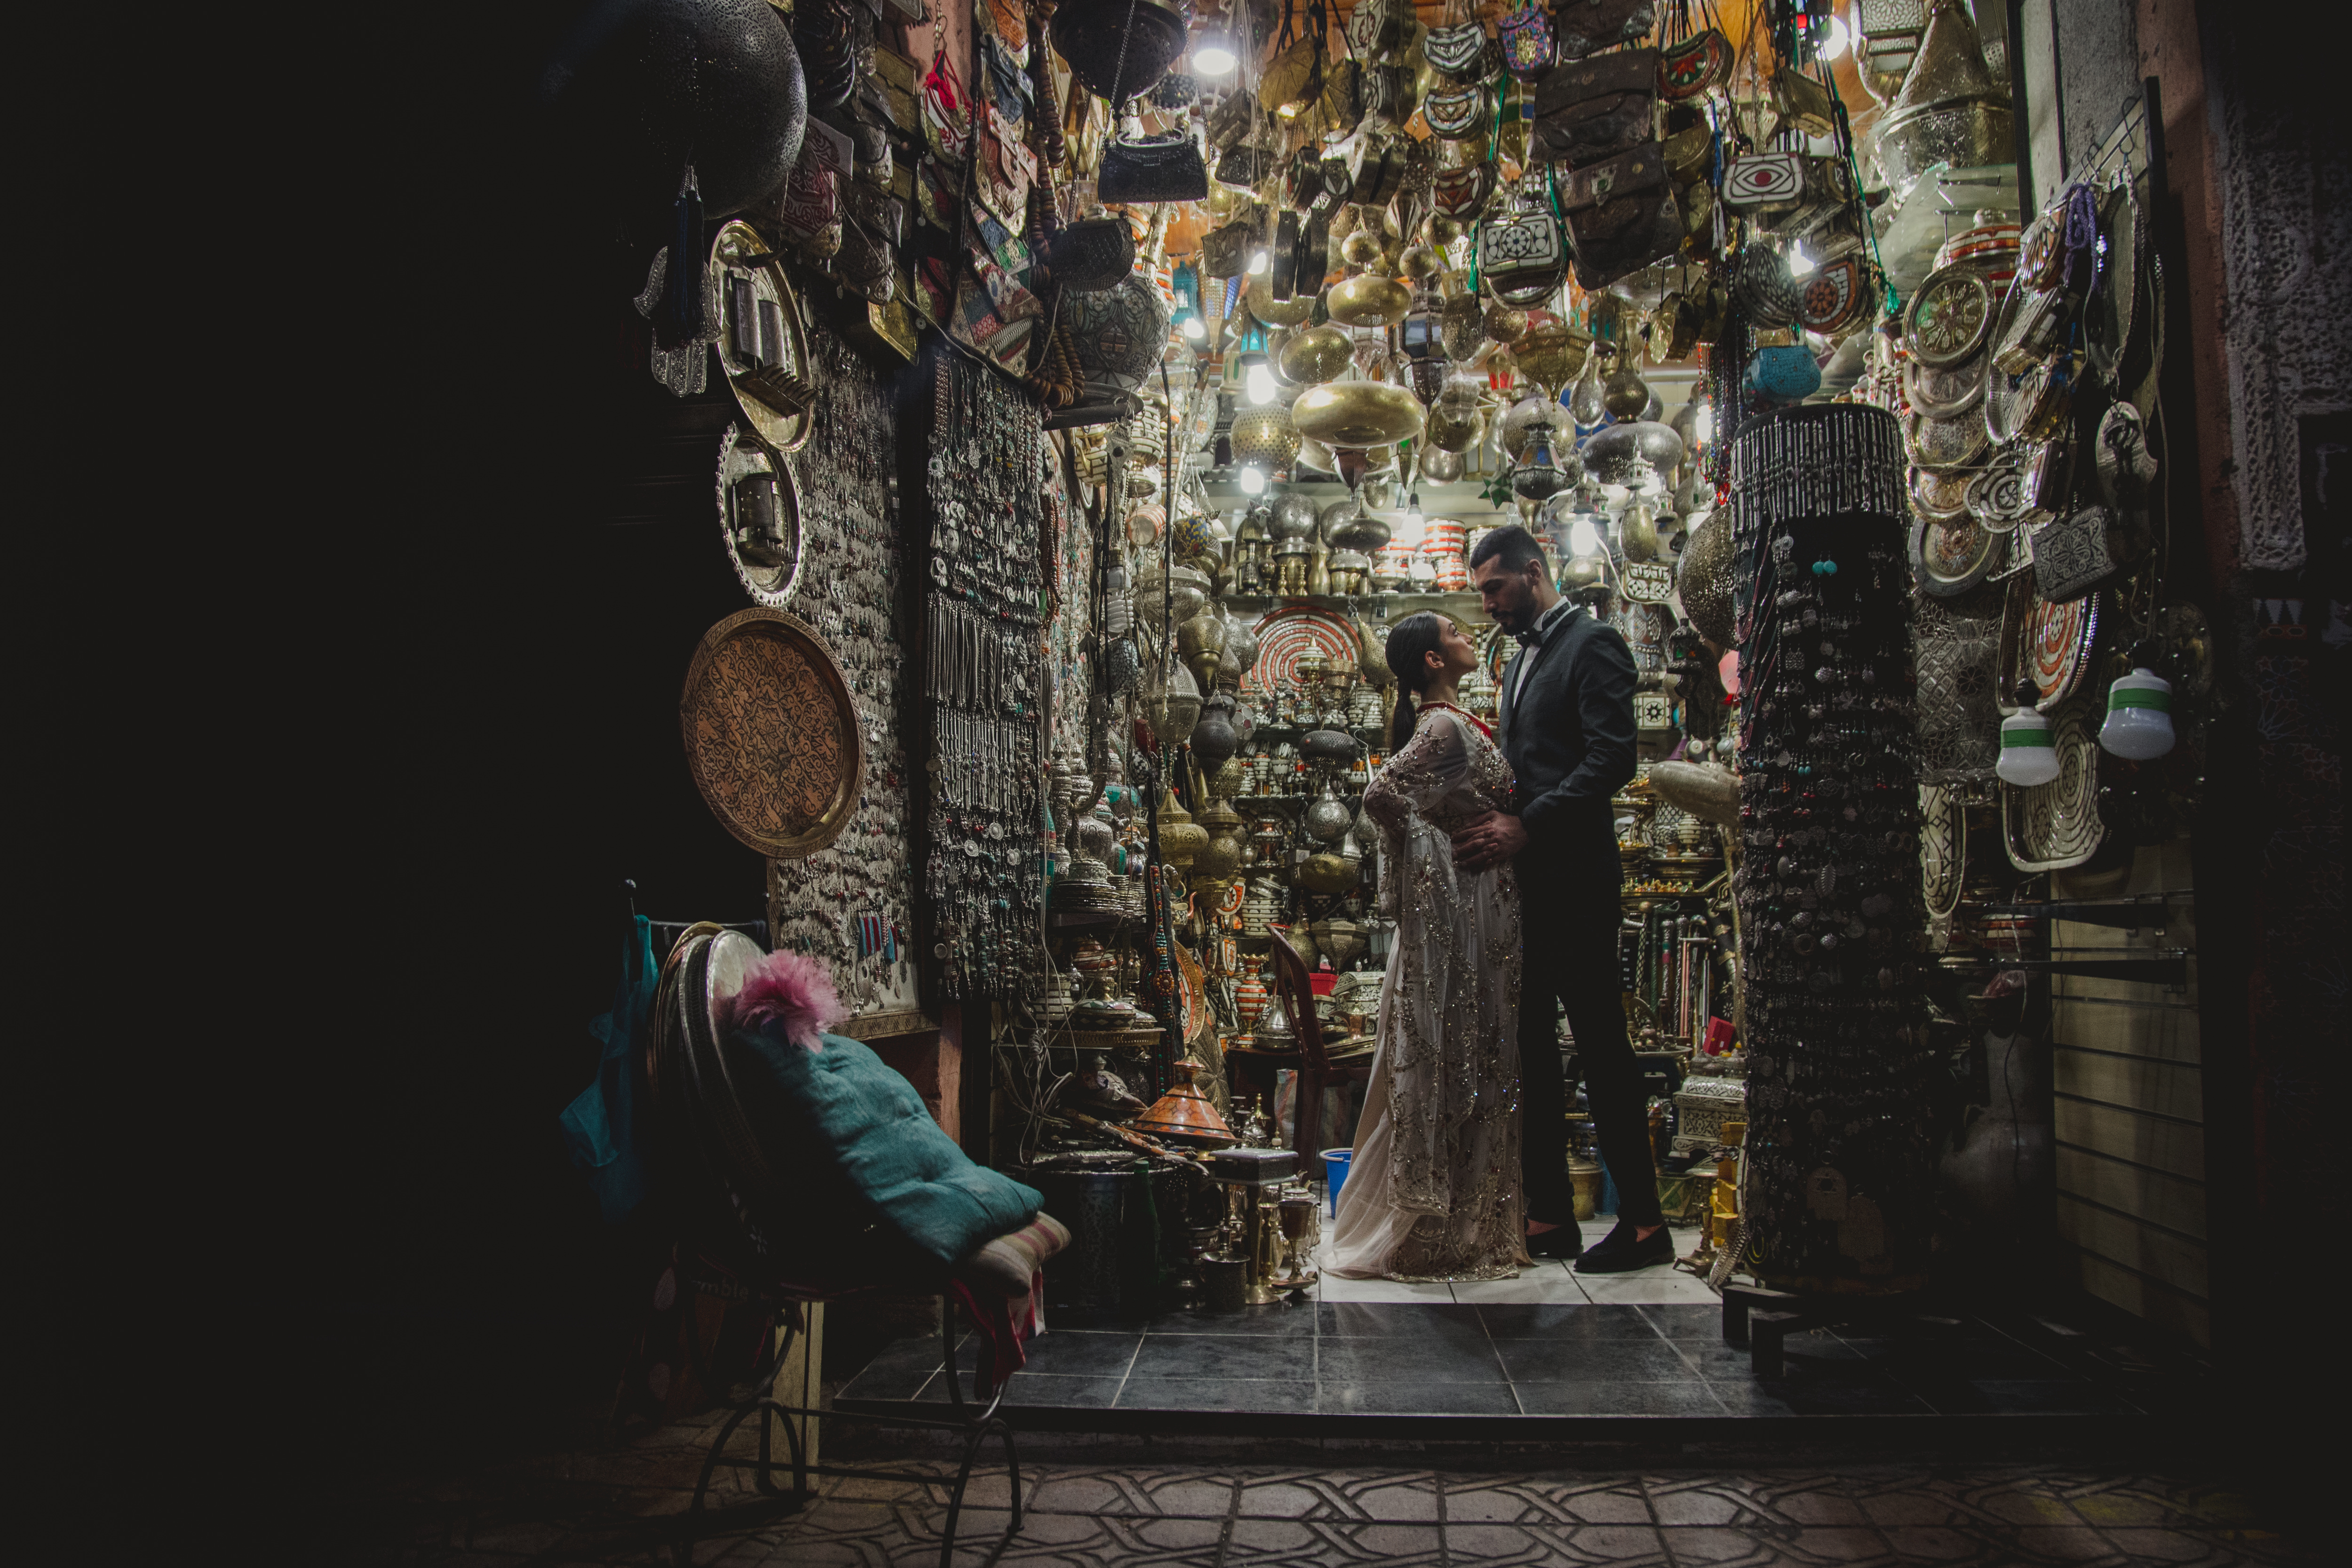 morocco_marrakesh_wedding_photography_nina_val_photography-48